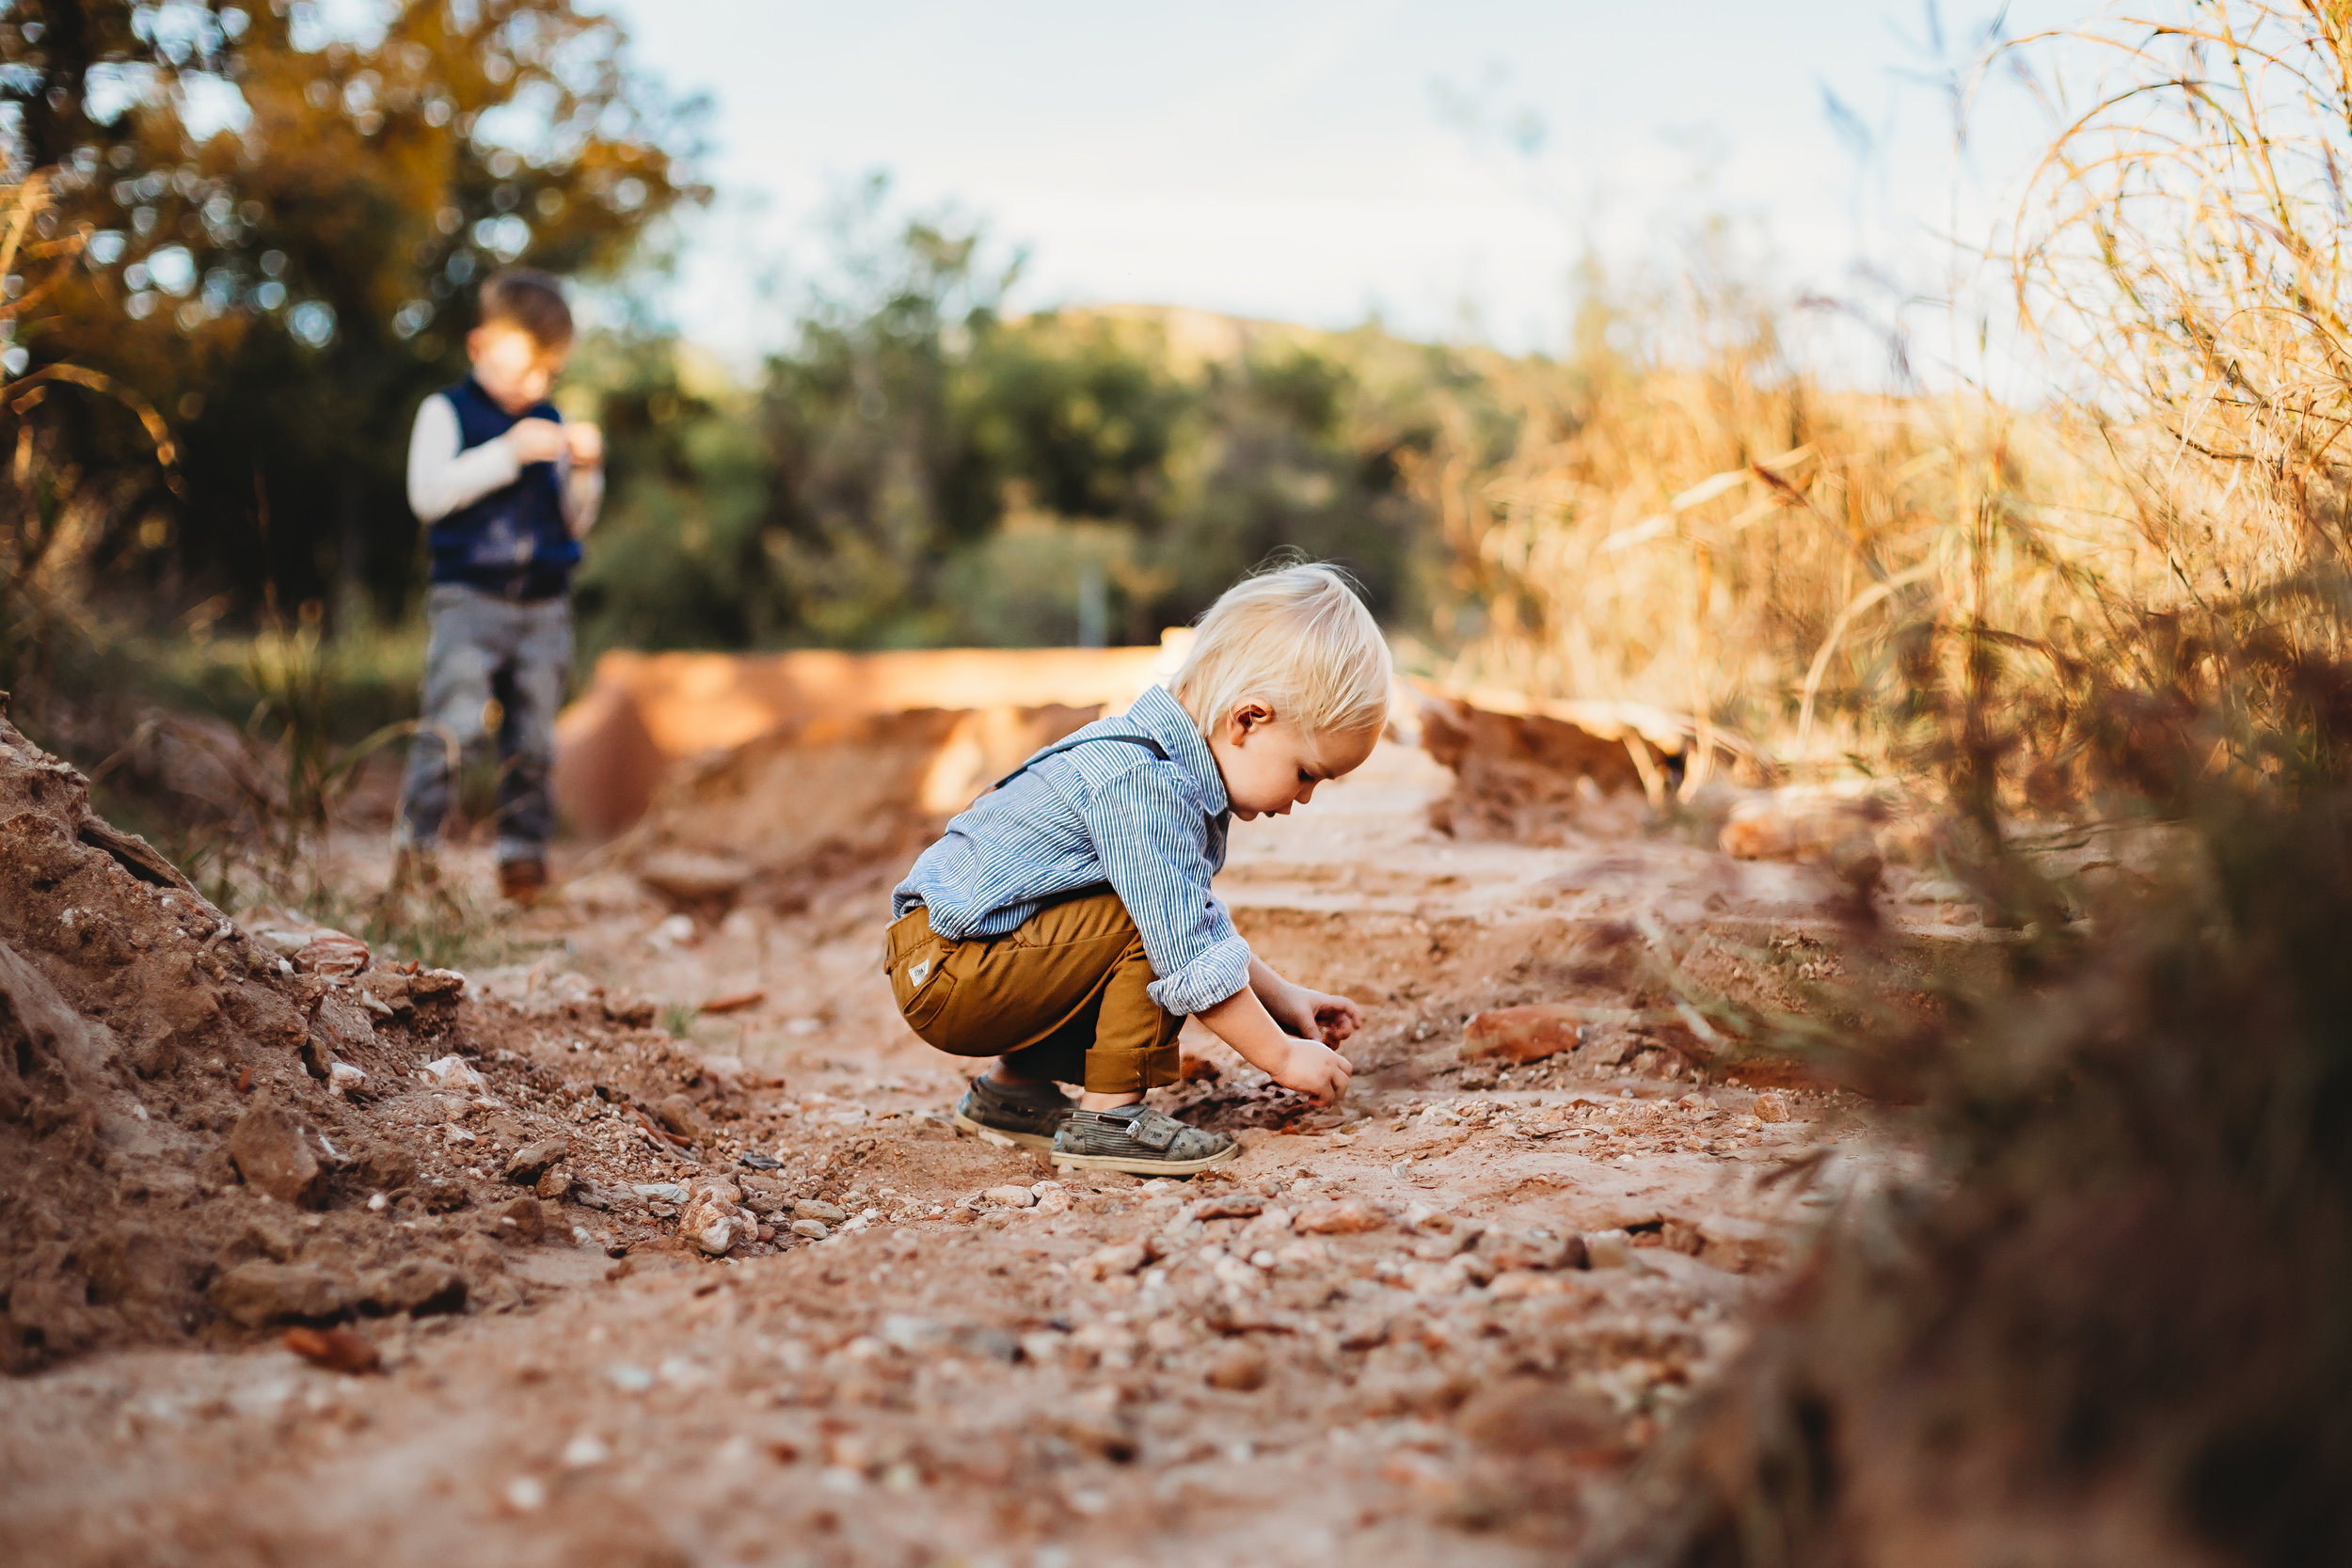 Boys exploring nature as they have some time to be themselves during family photo session #tealawardphotography #texasfamilyphotographer #amarillophotographer #amarillofamilyphotographer #lifestylephotography #emotionalphotography #familyphotosoot #family #lovingsiblings #purejoy #familyphotos #familyphotographer #greatoutdoors #unposed #naturalfamilyinteraction